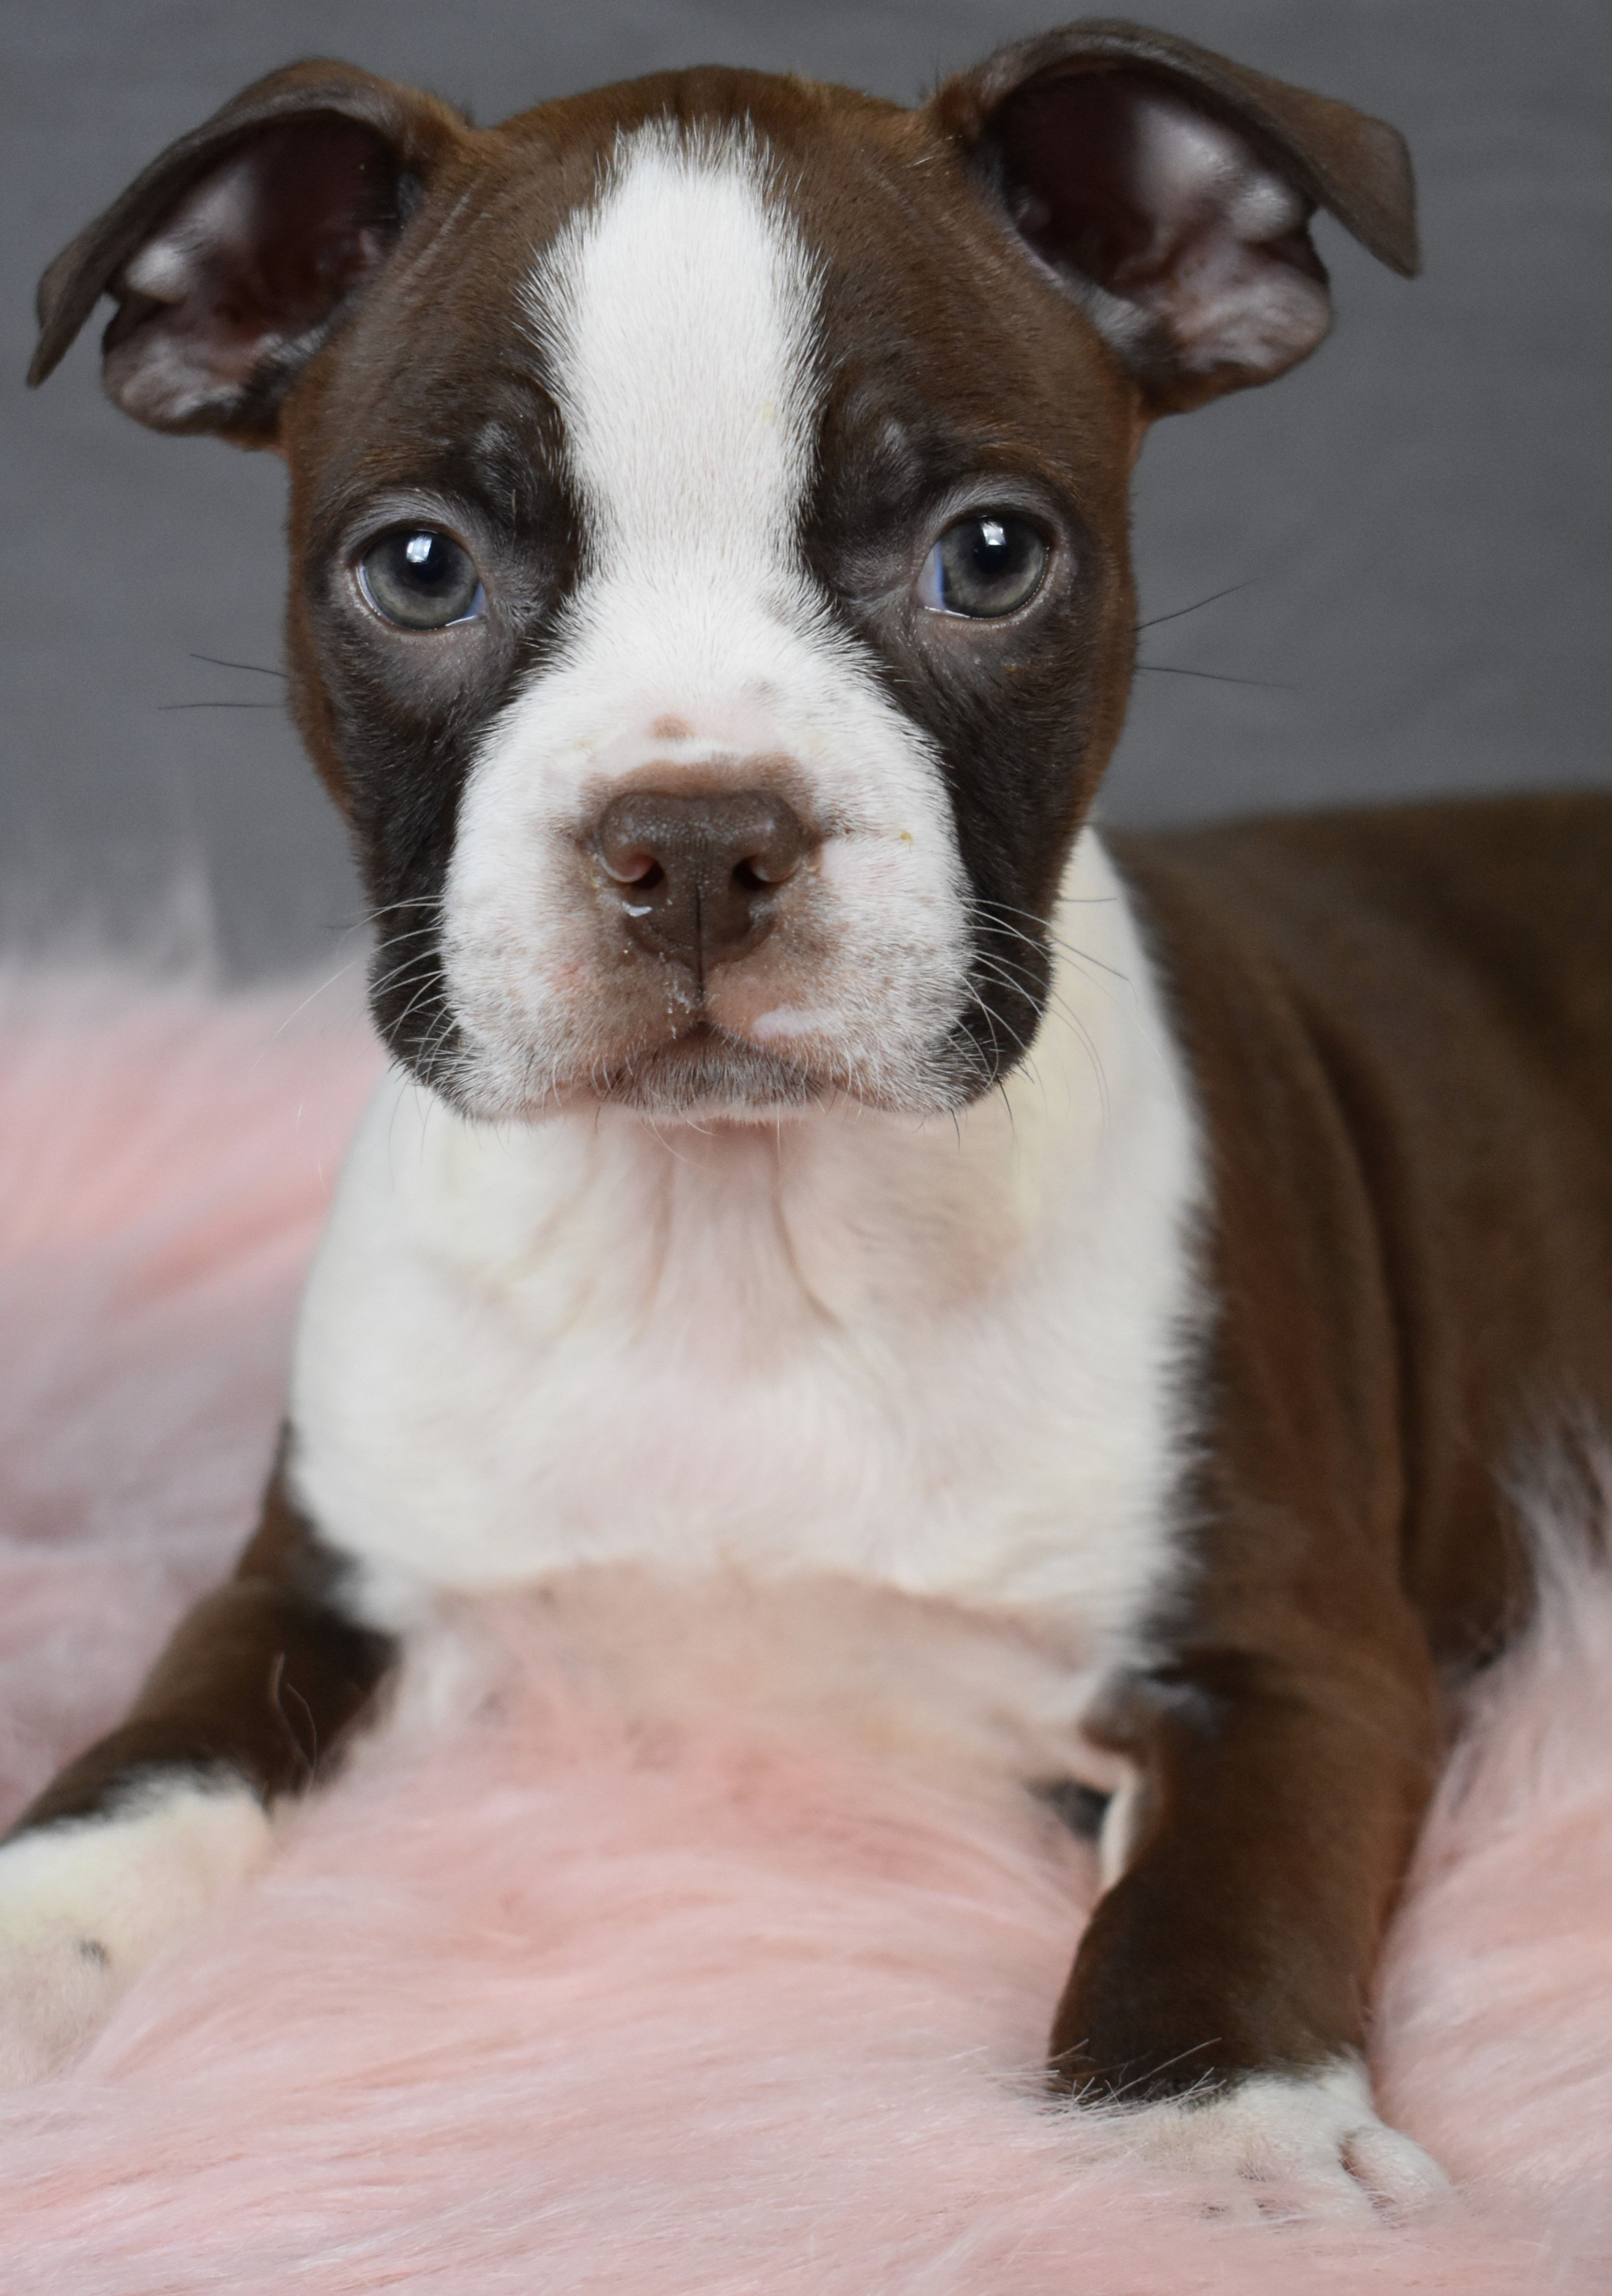 Puppies for Sale in 2020 Boston terrier, Dog breeder